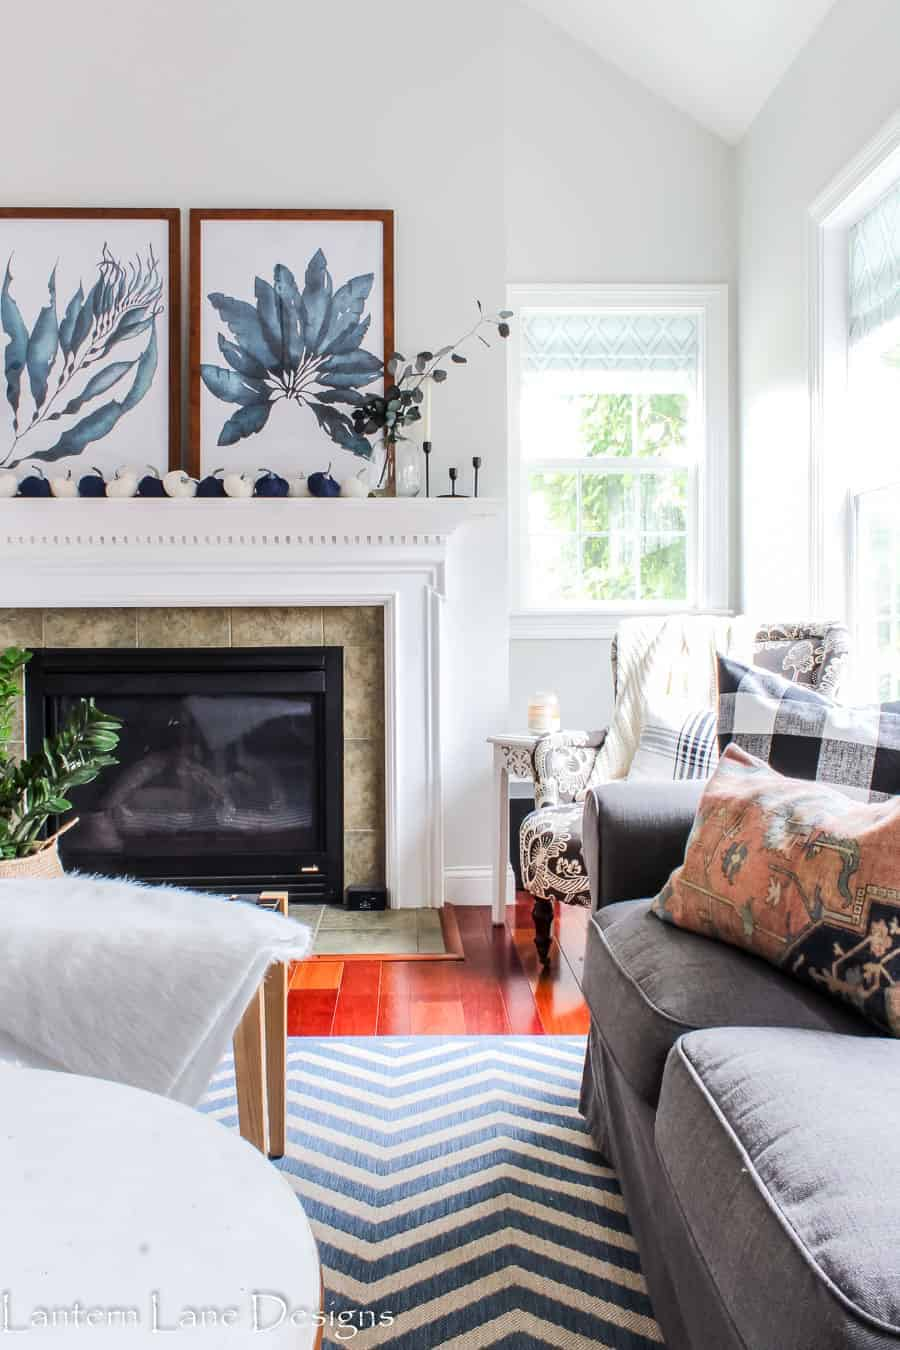 tips and tricks on how to decorate your home from scratch